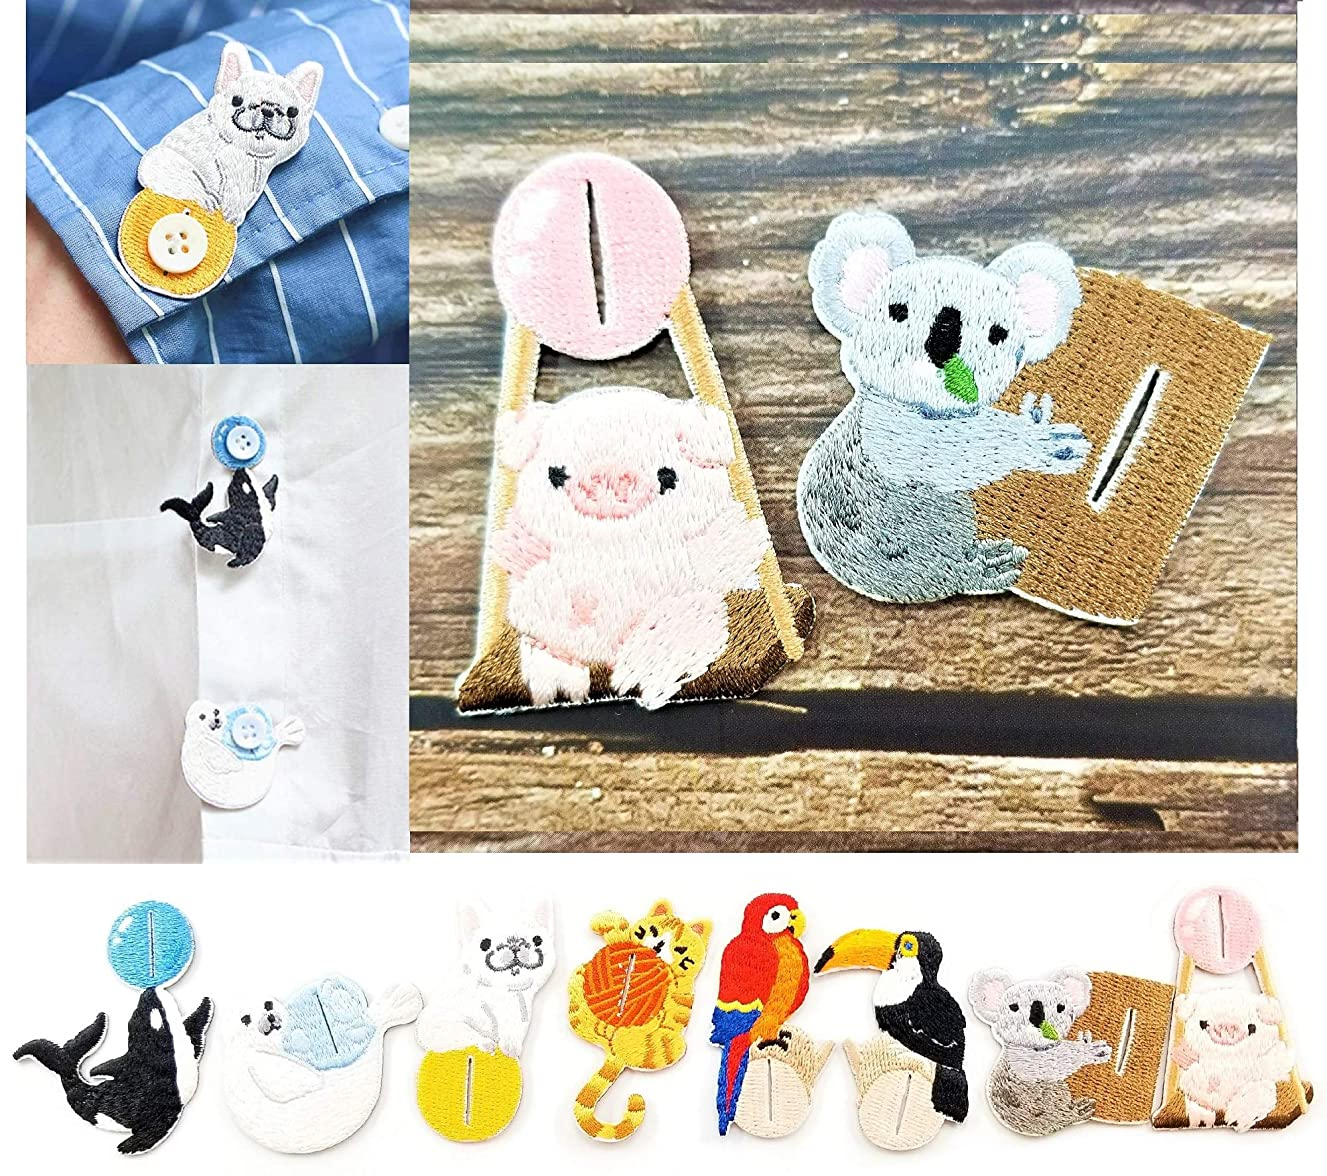 2 Pieces Embroidered Patches Shirt Button Accessories Various DIY Cloth Art Embroidery Decoration Super Cute Fashion Stylish Accessories for Kids and Adult (Koala Bear & Pink Piggy)